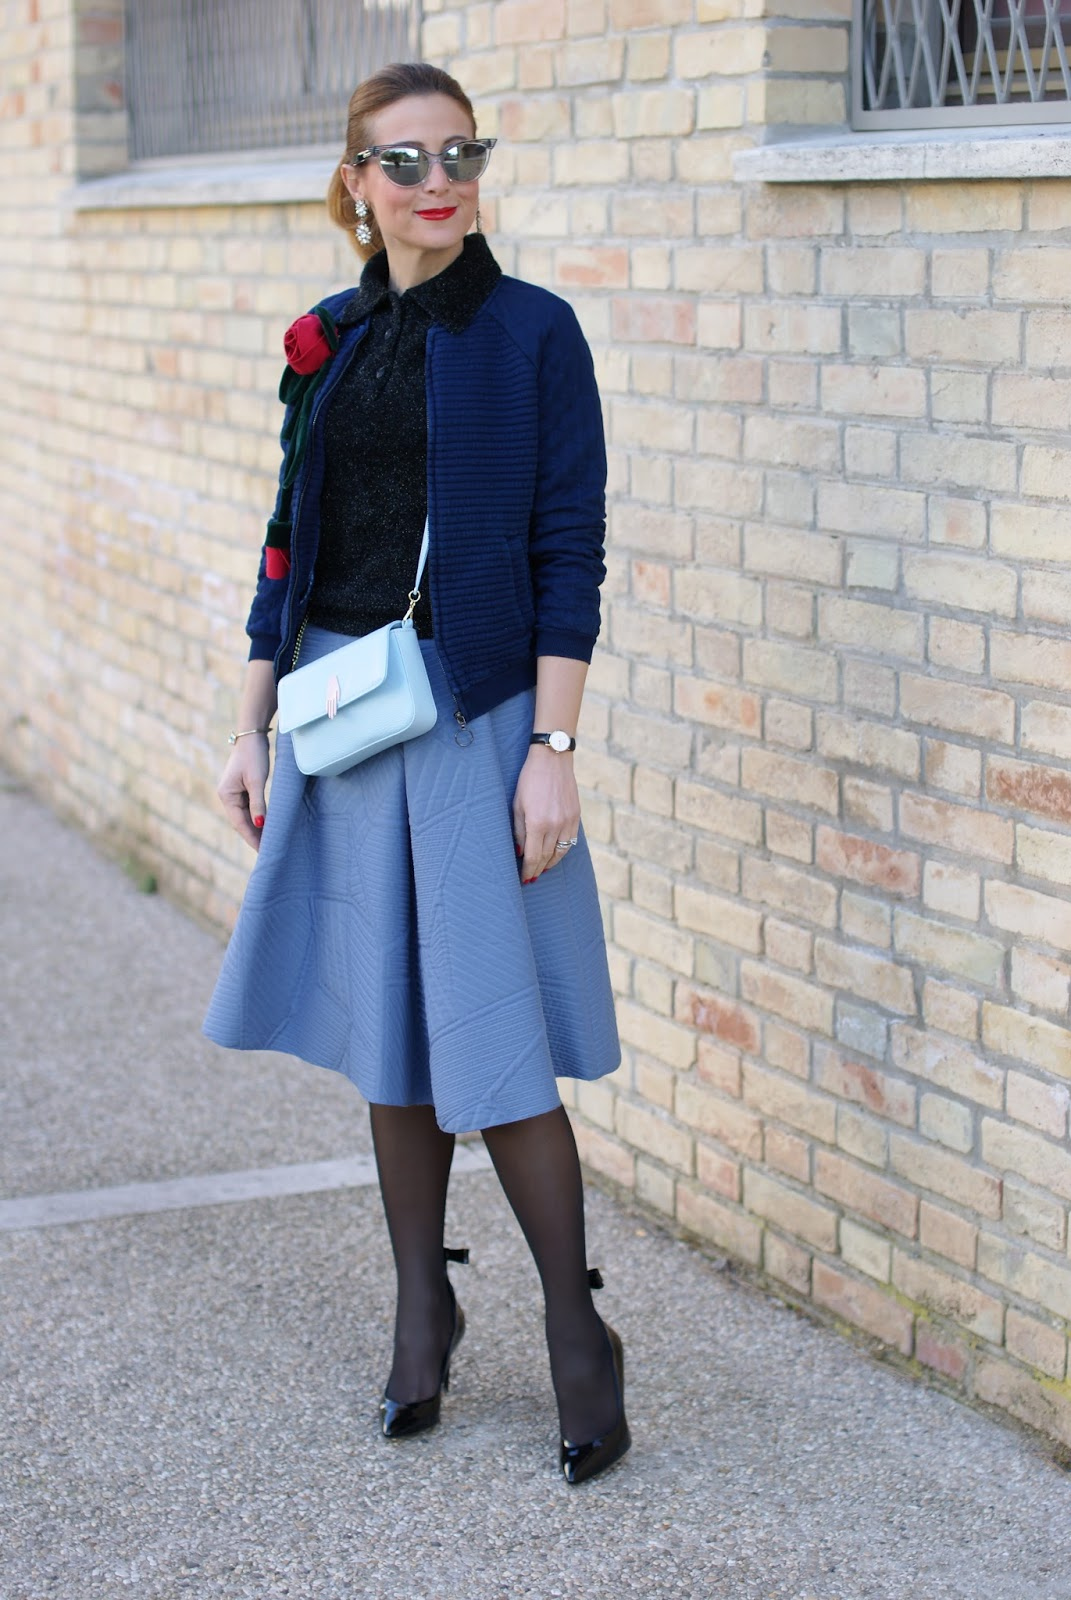 Valentine's day outfit with bomber jacket, Lazzari bag, asymmetrical midi skirt, Sergio Amaranti shoes on Fashion and Cookies fashion blog, fashion blogger style